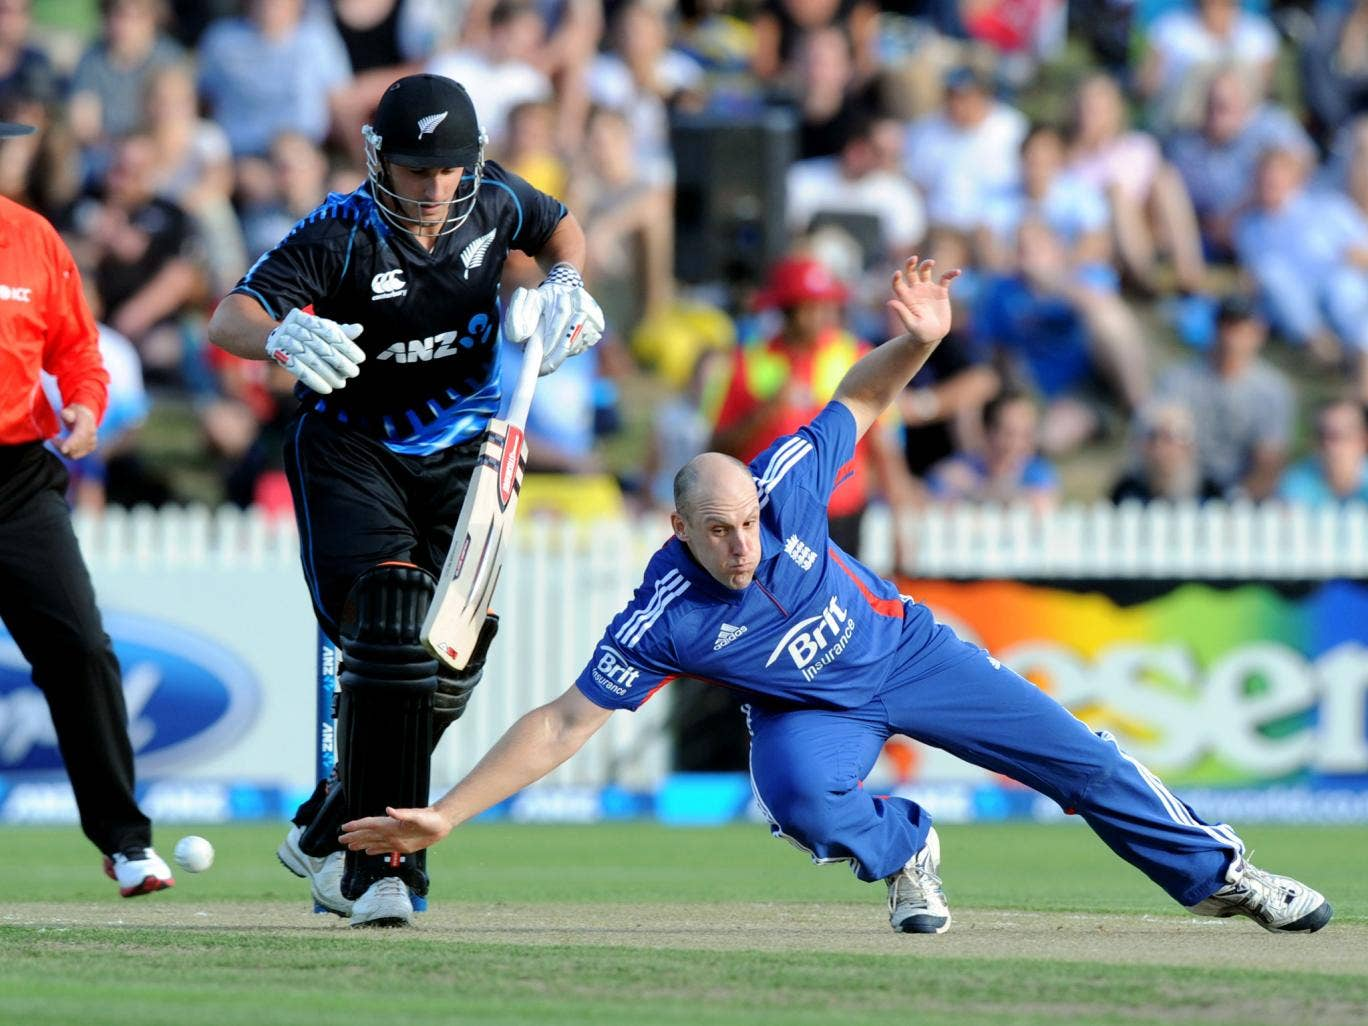 England's James Tredwell dives in front of New Zealand's Hamish Rutherfored